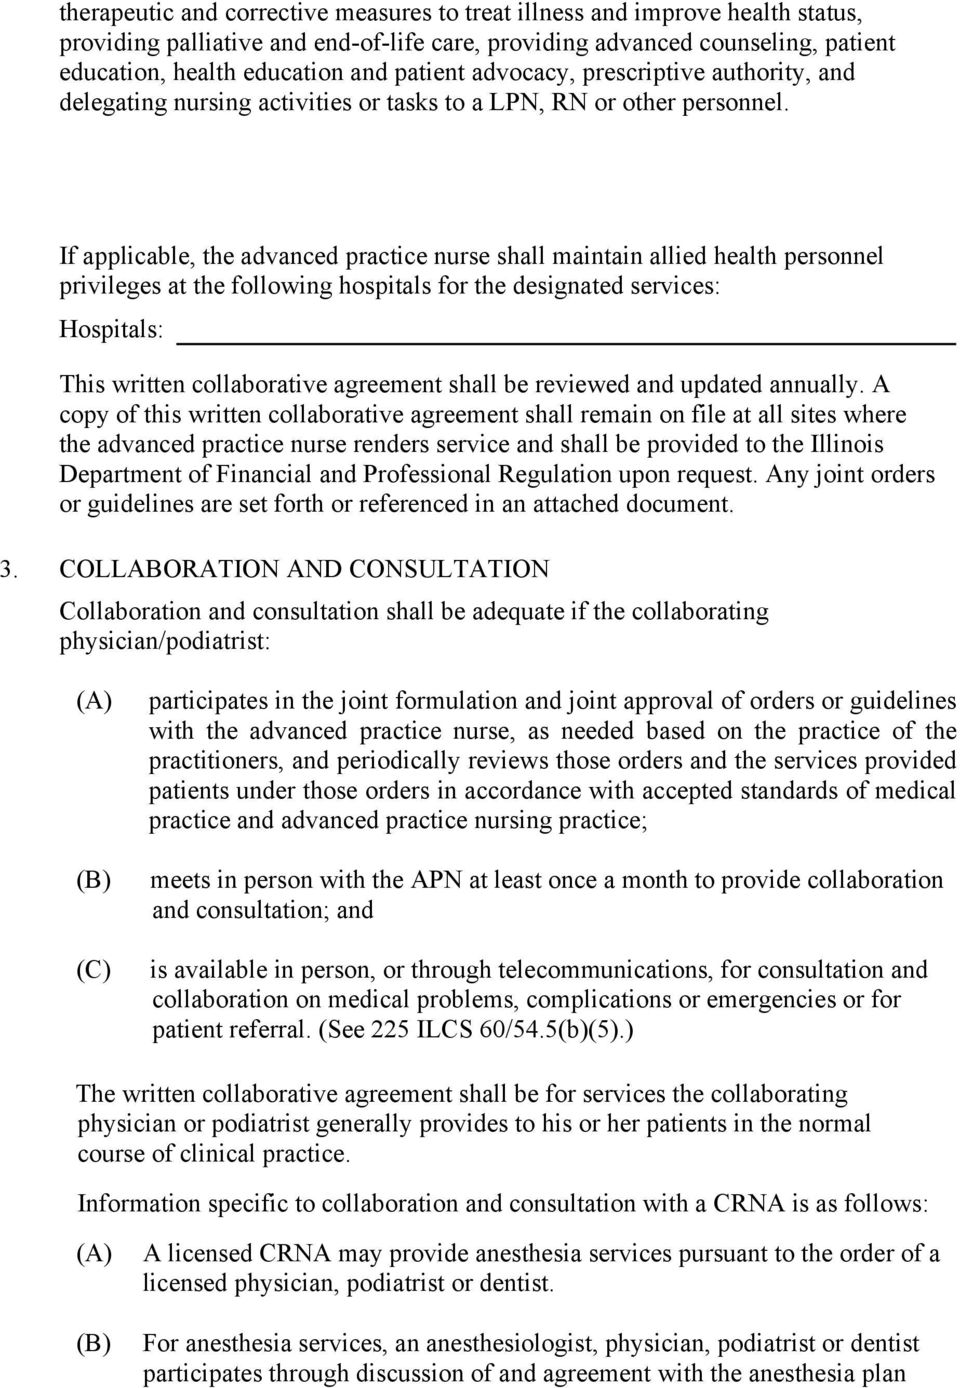 If applicable, the advanced practice nurse shall maintain allied health personnel privileges at the following hospitals for the designated services: Hospitals: This written collaborative agreement